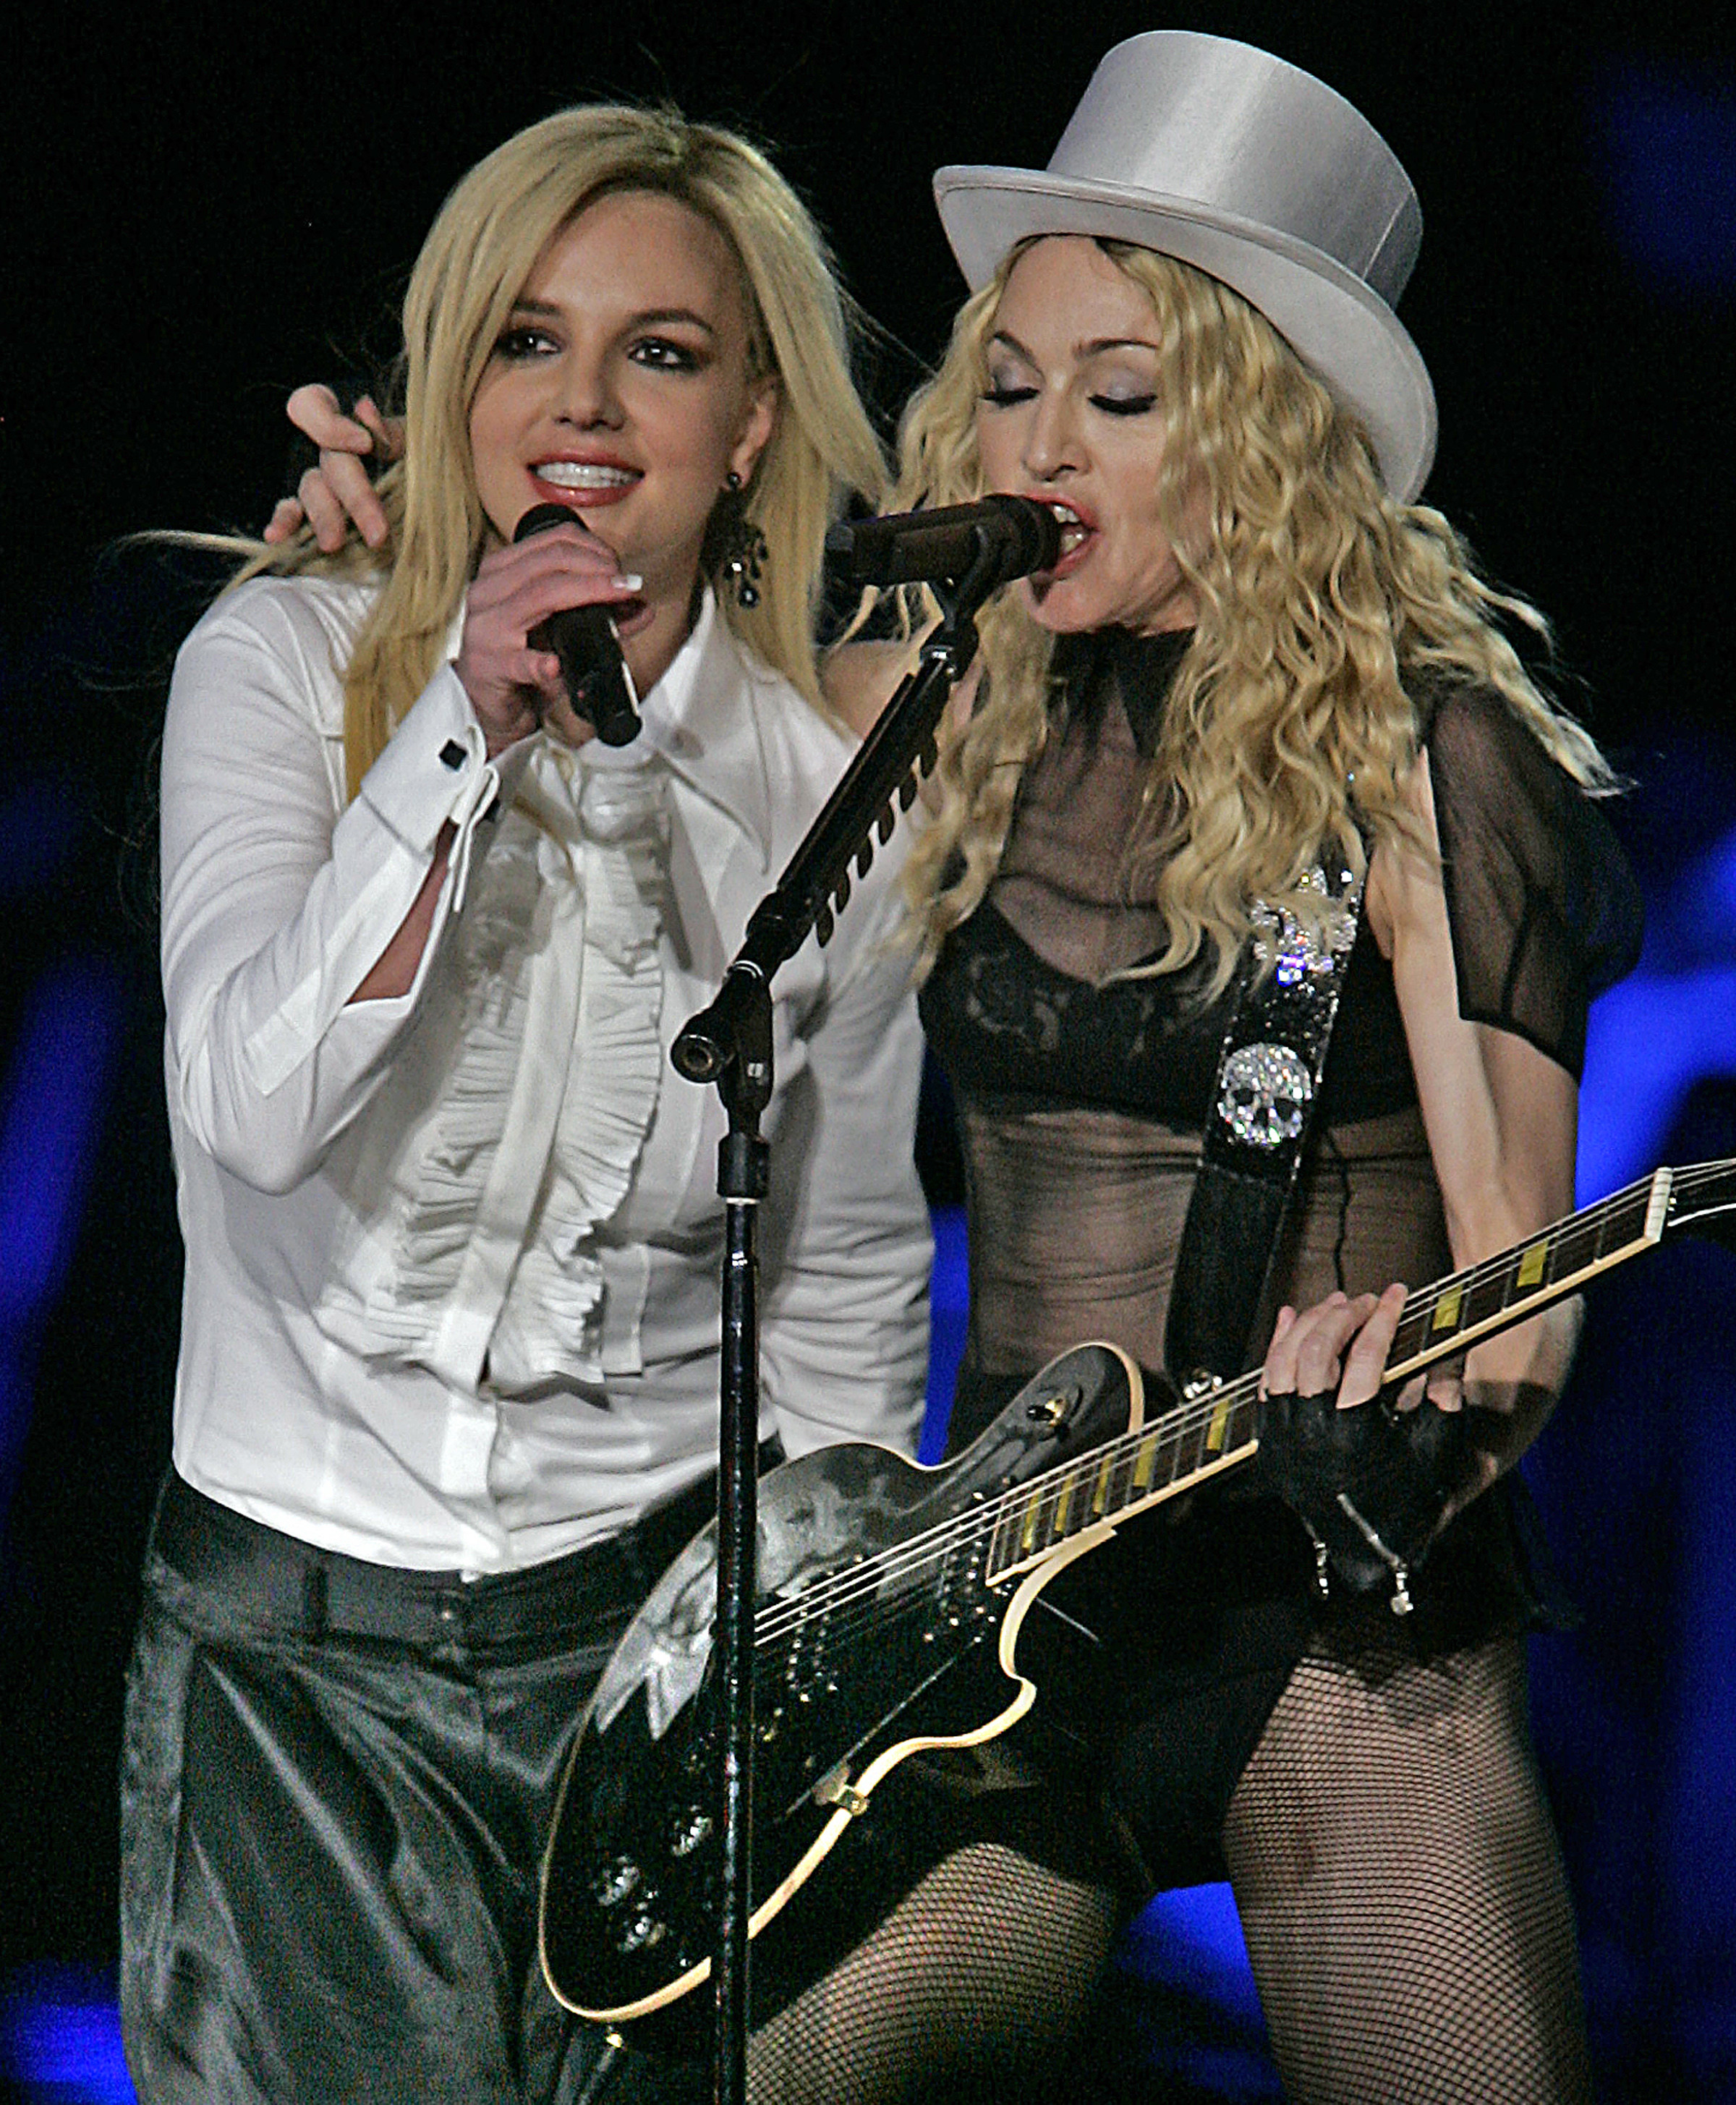 Britney Spears and Madonna sing together onstage in 2008